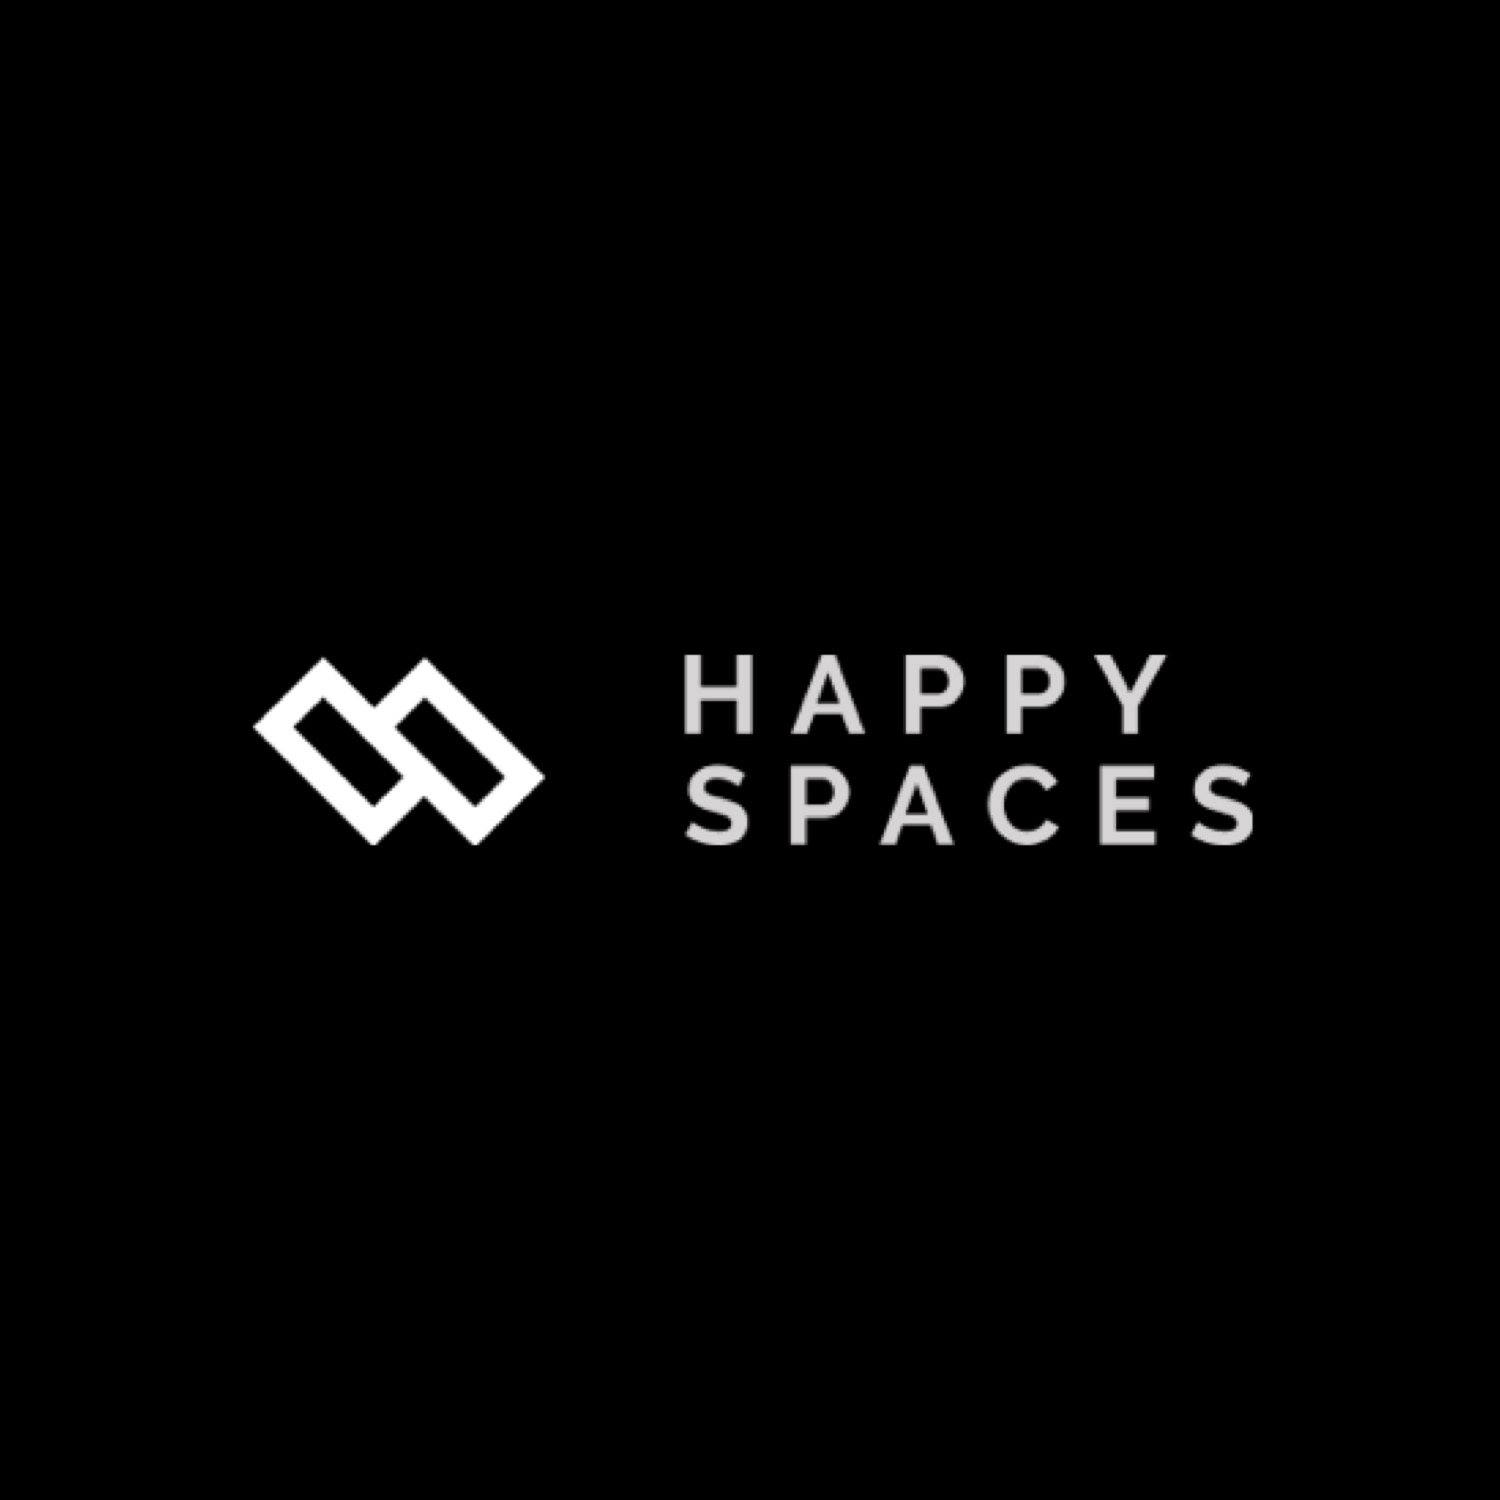 Happy Spaces.jpg